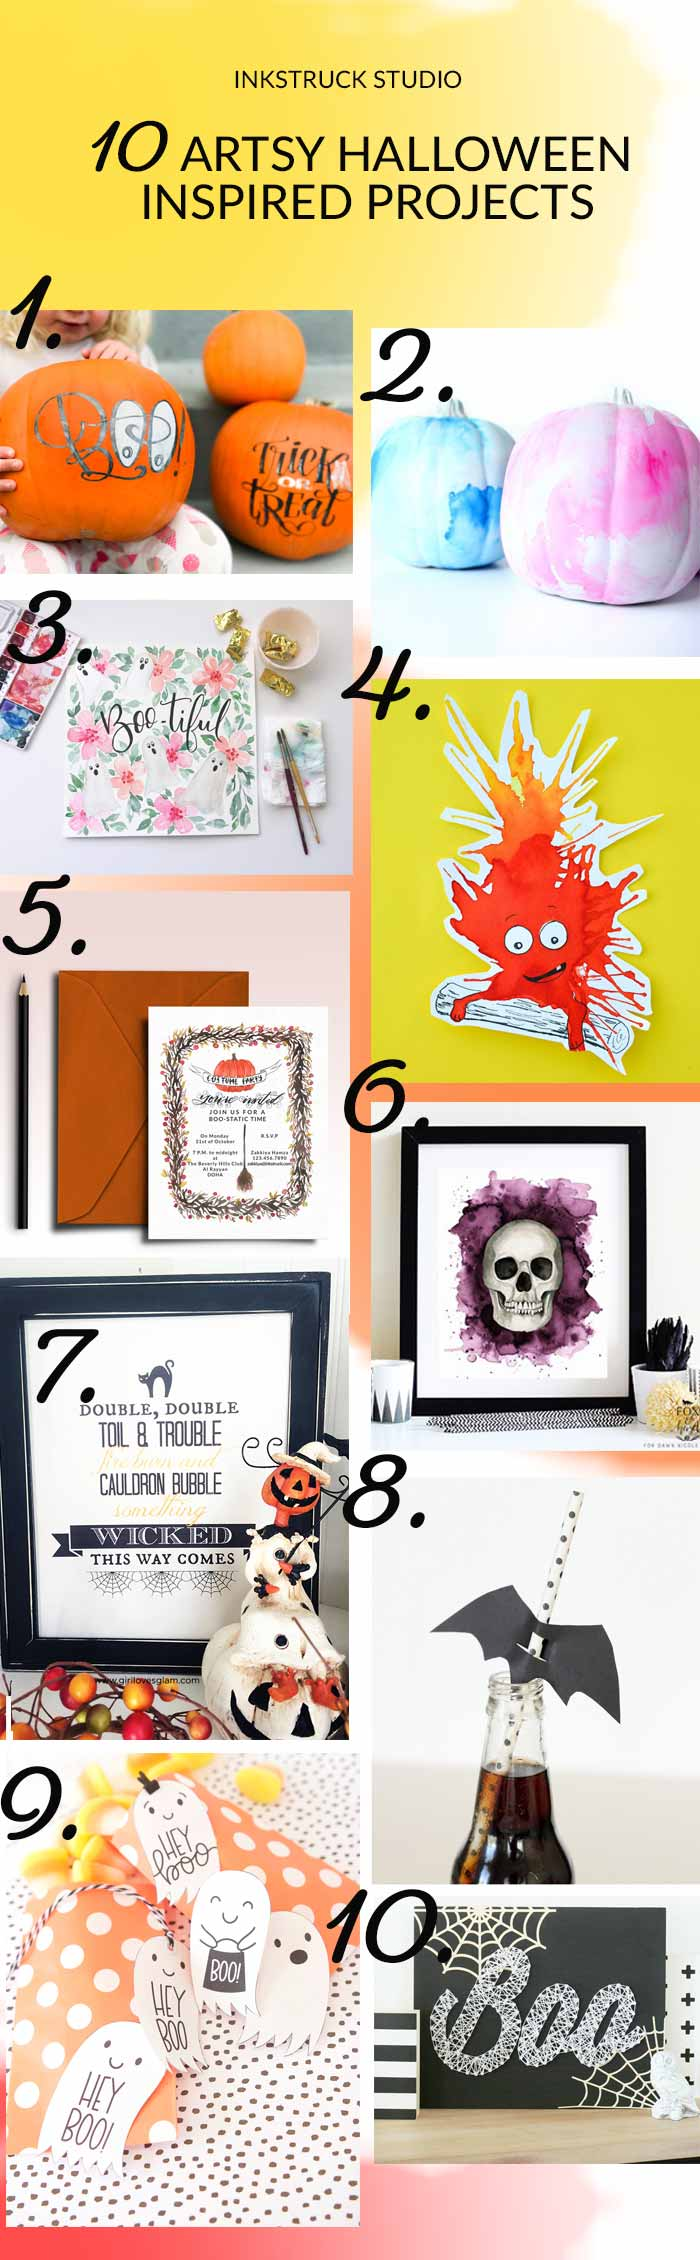 Check out some fabulous DIY Halloween projects in this artsy roundup - Inkstruck Studio